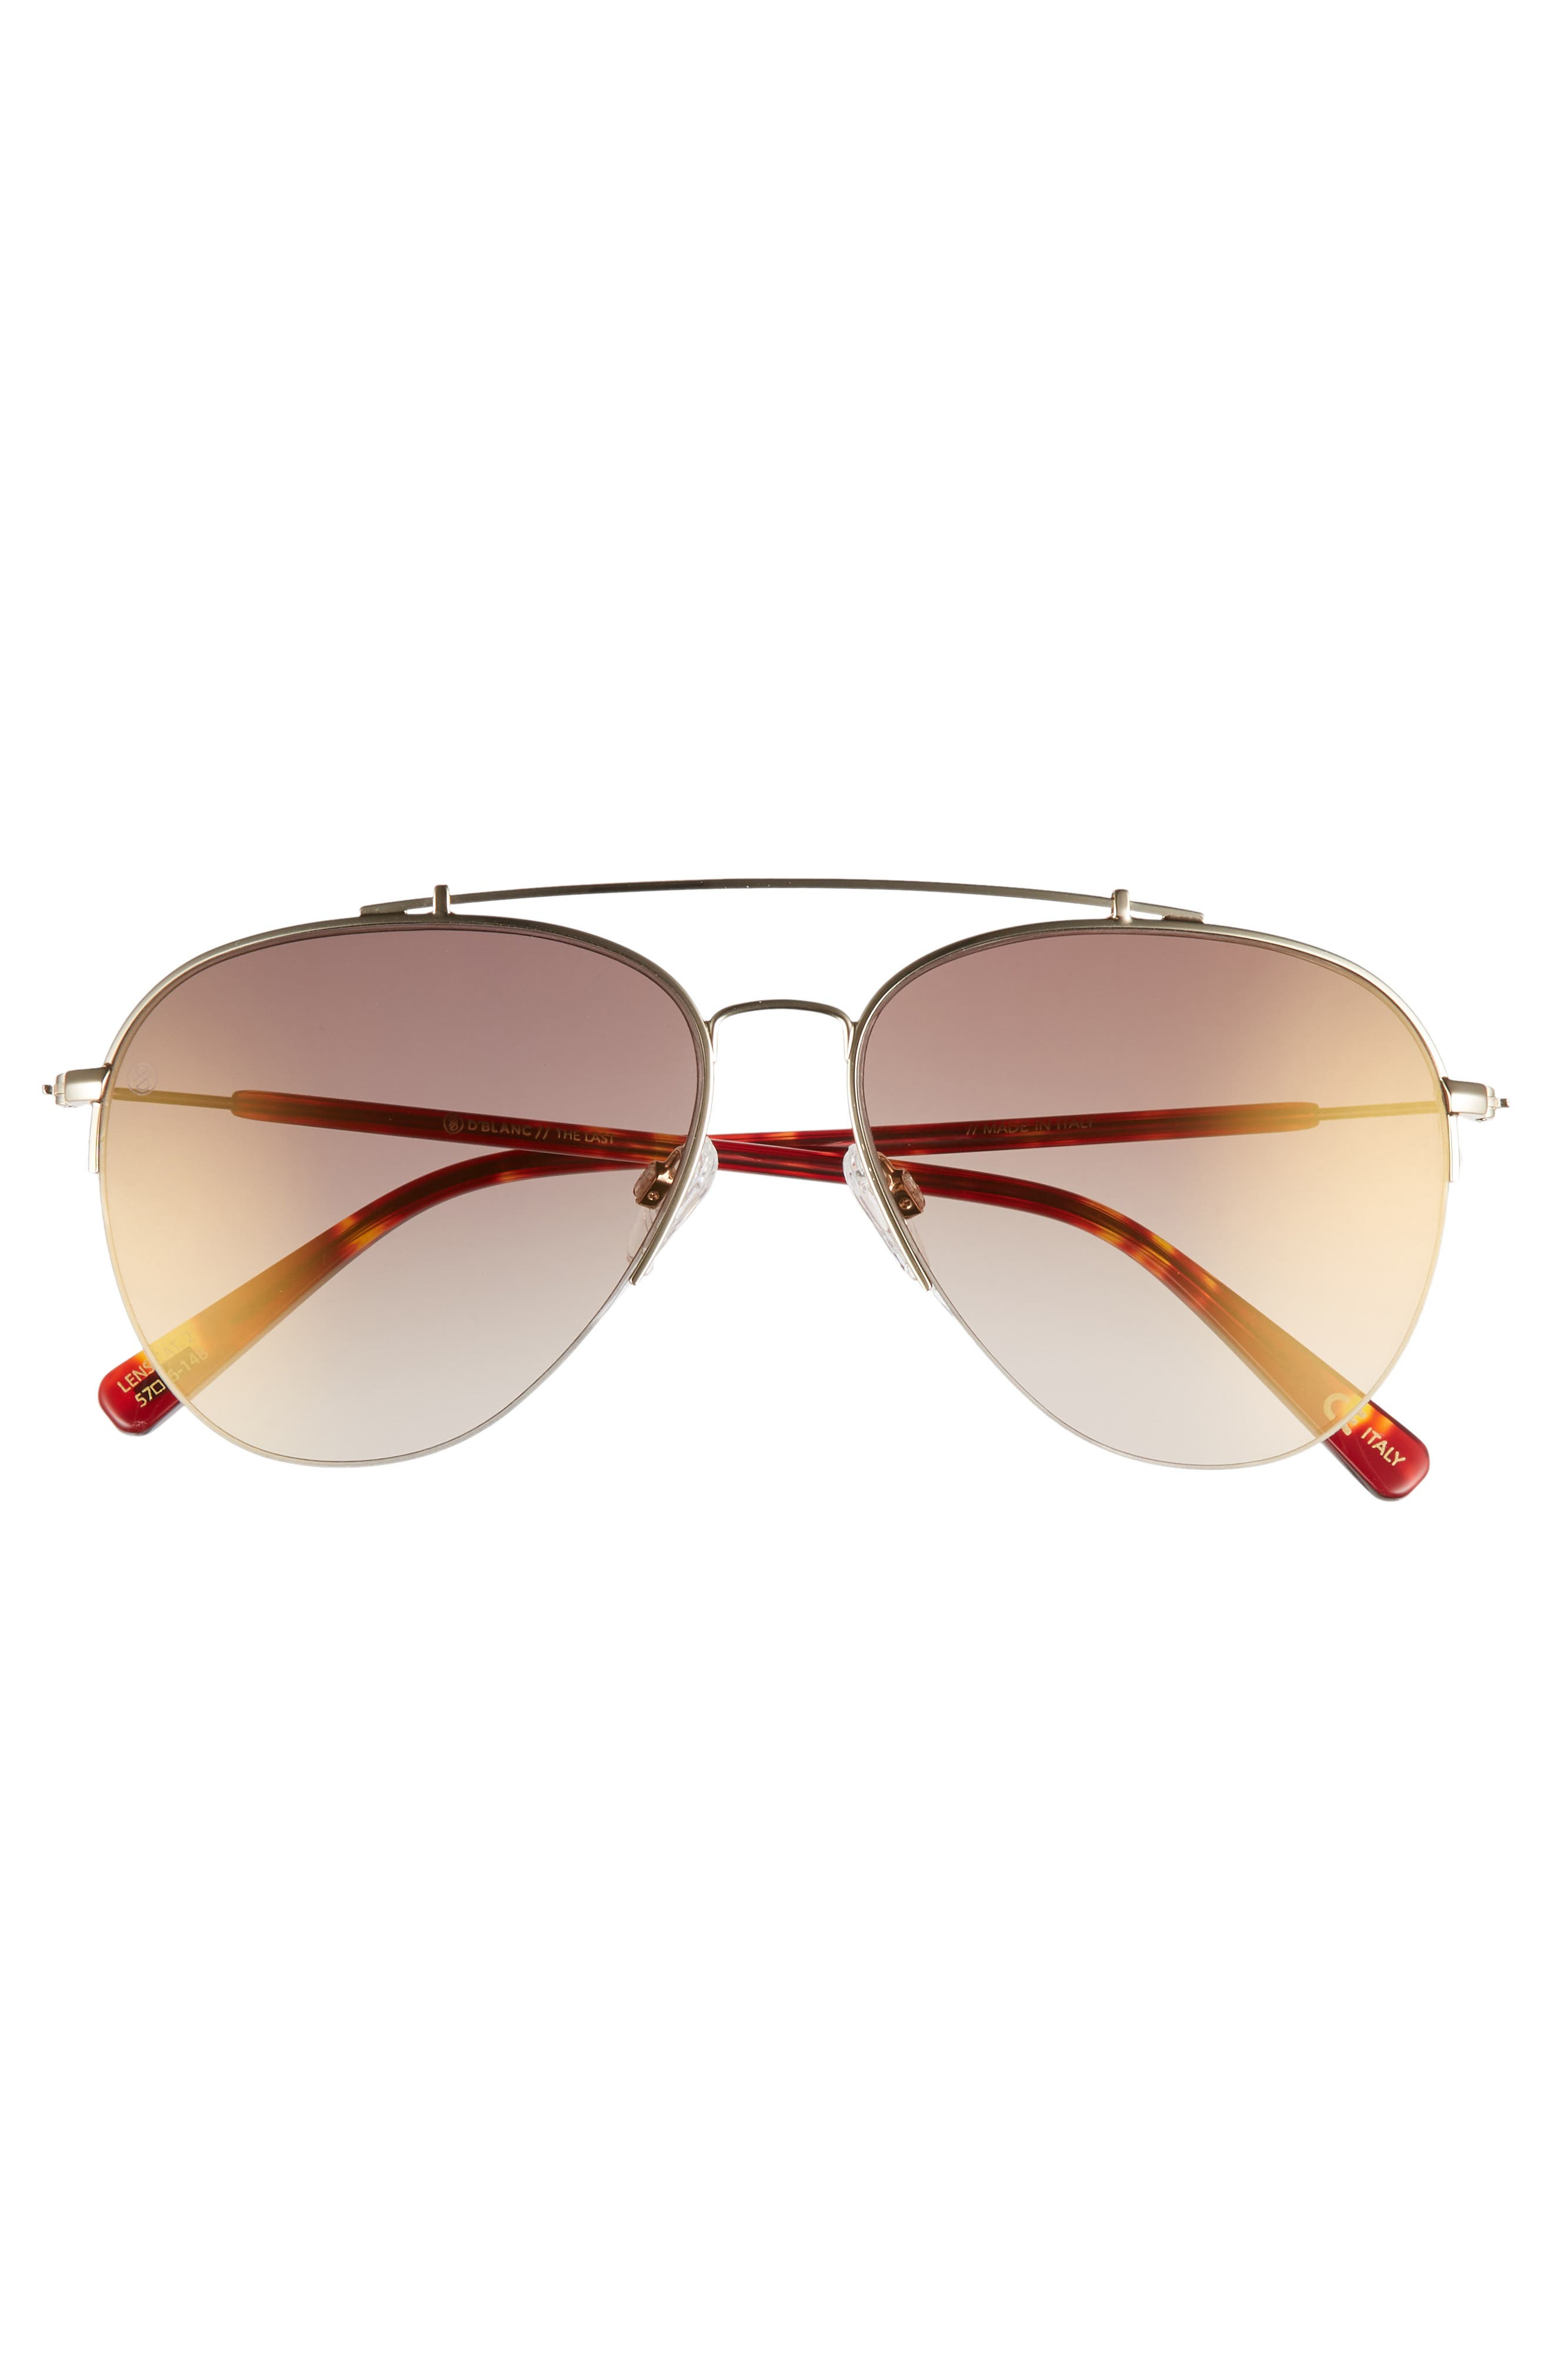 D'BLANC The Last 57mm Aviator Sunglasses,                             Alternate thumbnail 3, color,                             Toffee/ Brown